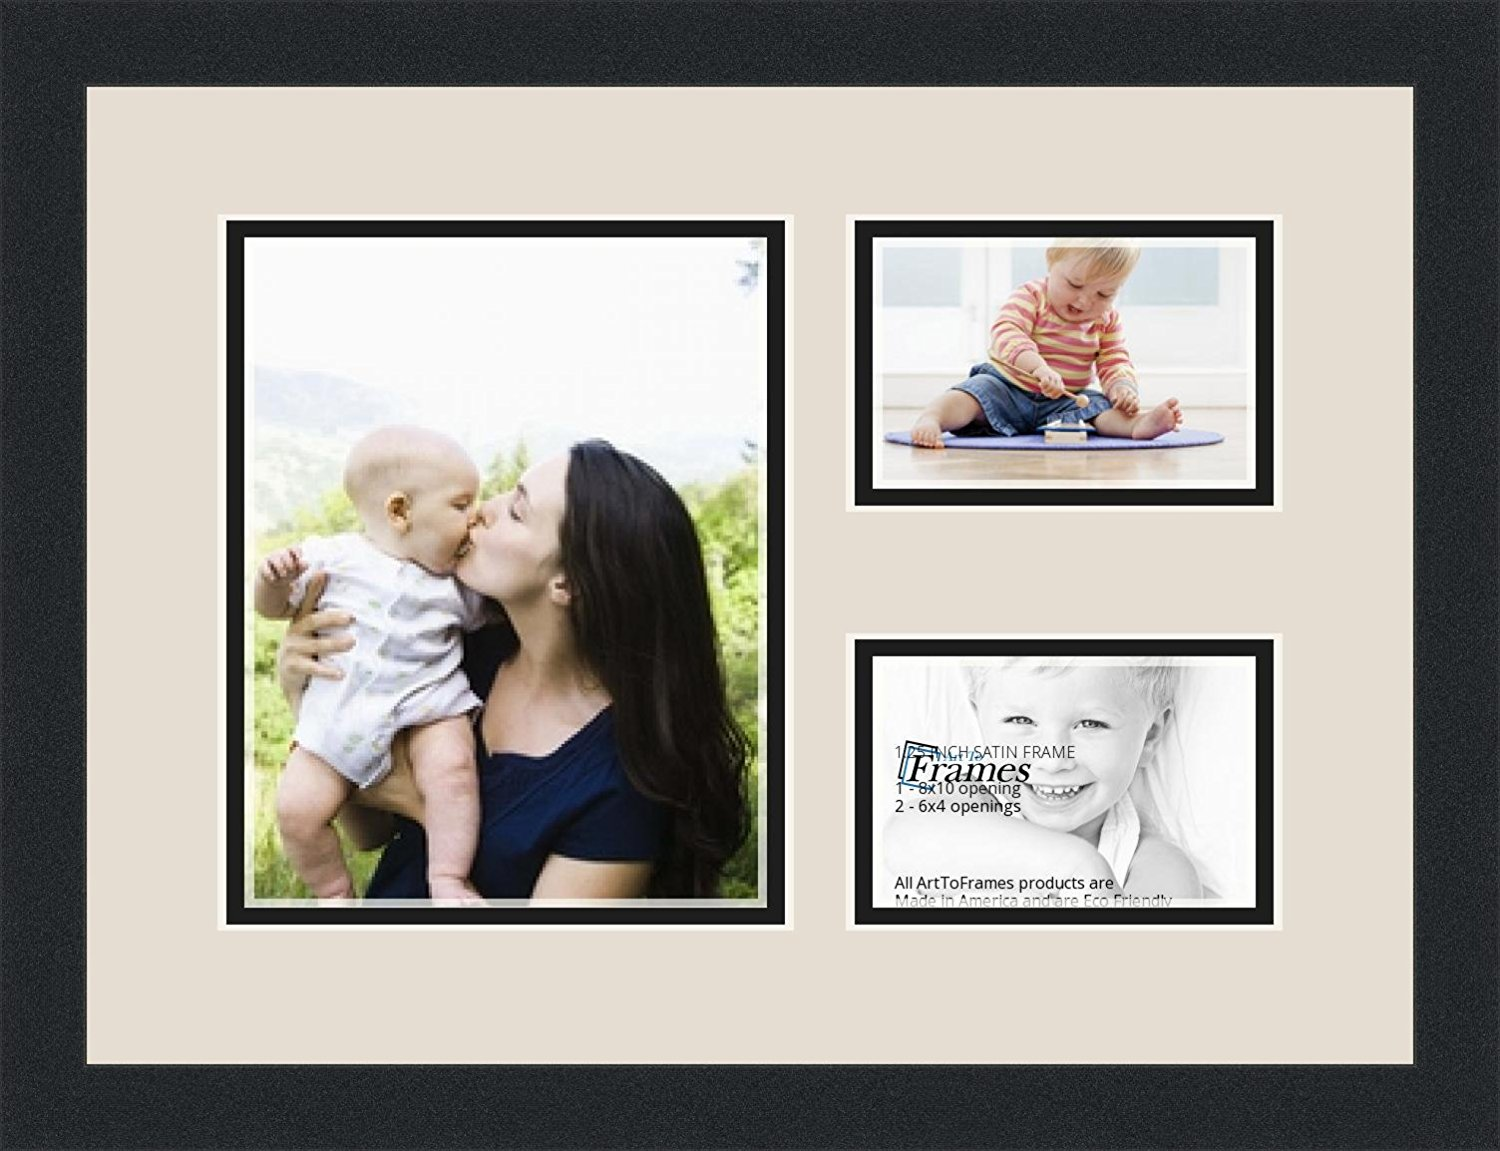 Cheap 8x10 double photo frame find 8x10 double photo frame deals get quotations art to frames double multimat 1647 75489 frbw26079 collage photo jeuxipadfo Gallery